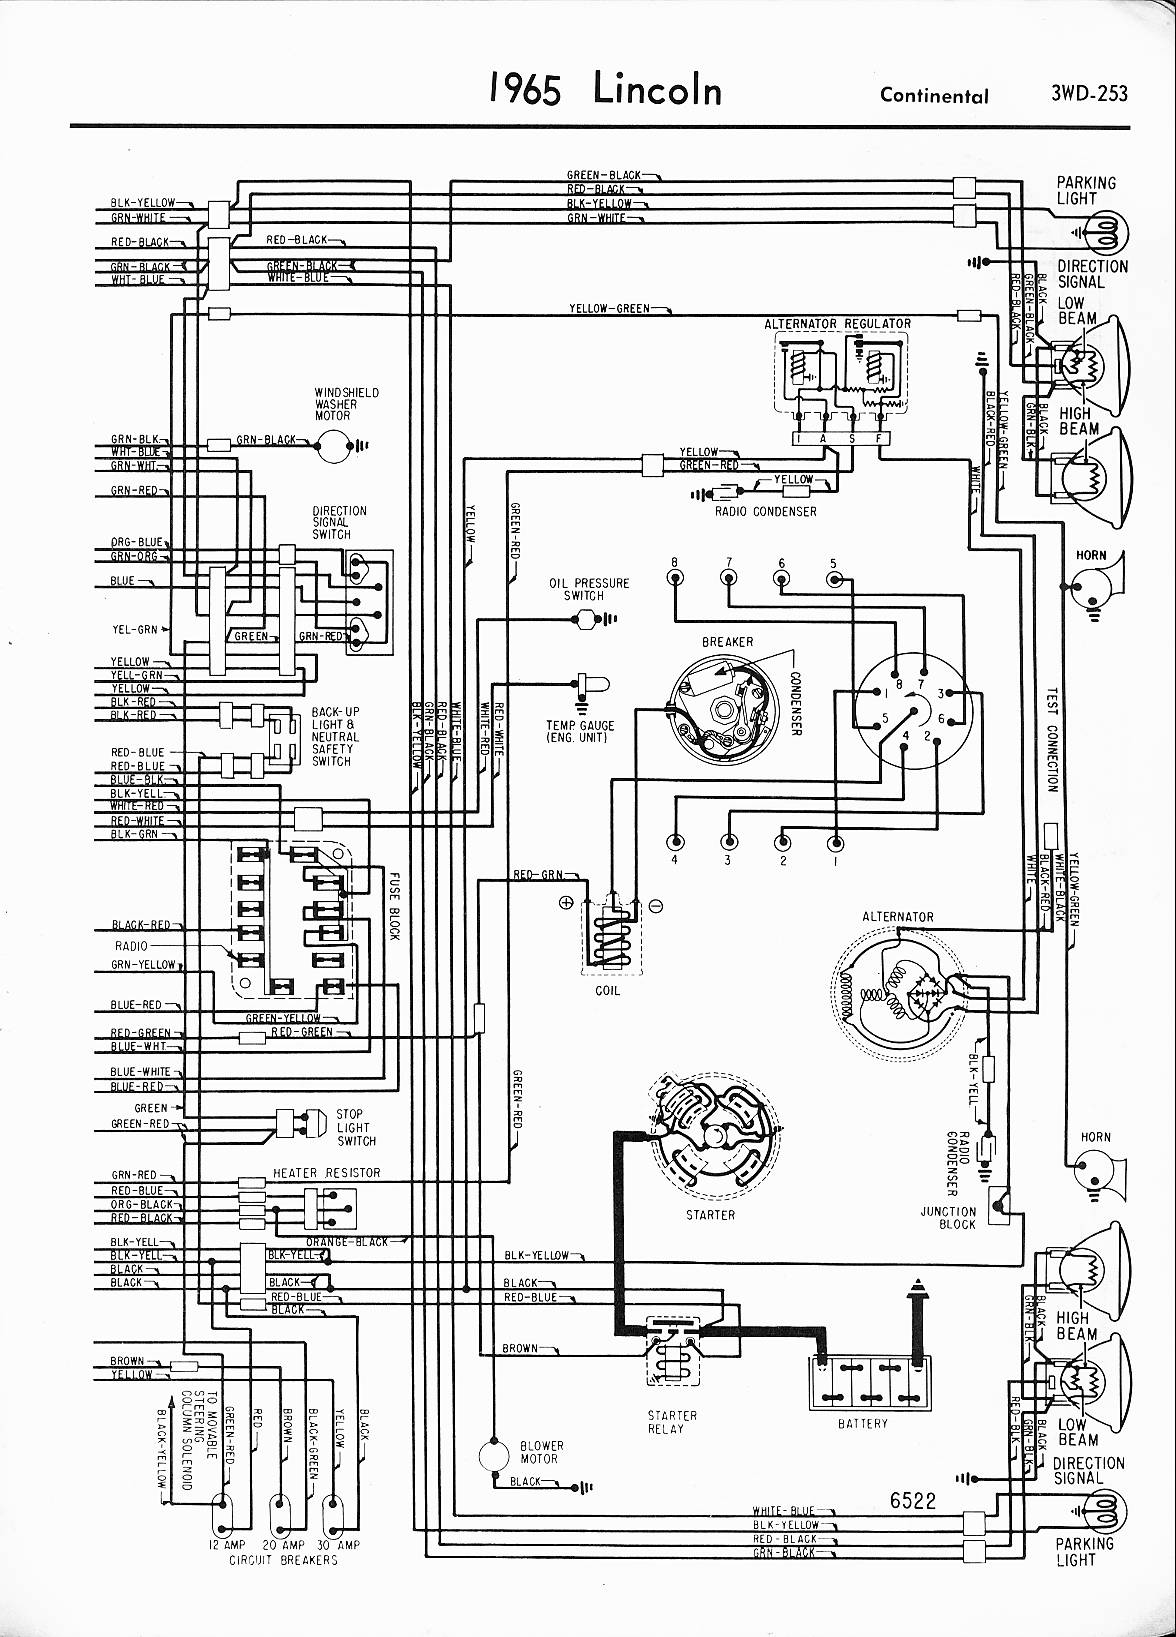 Lincoln Wiring Diagrams 1957 1965 1989 Suburban Rear Window Diagram Right Half